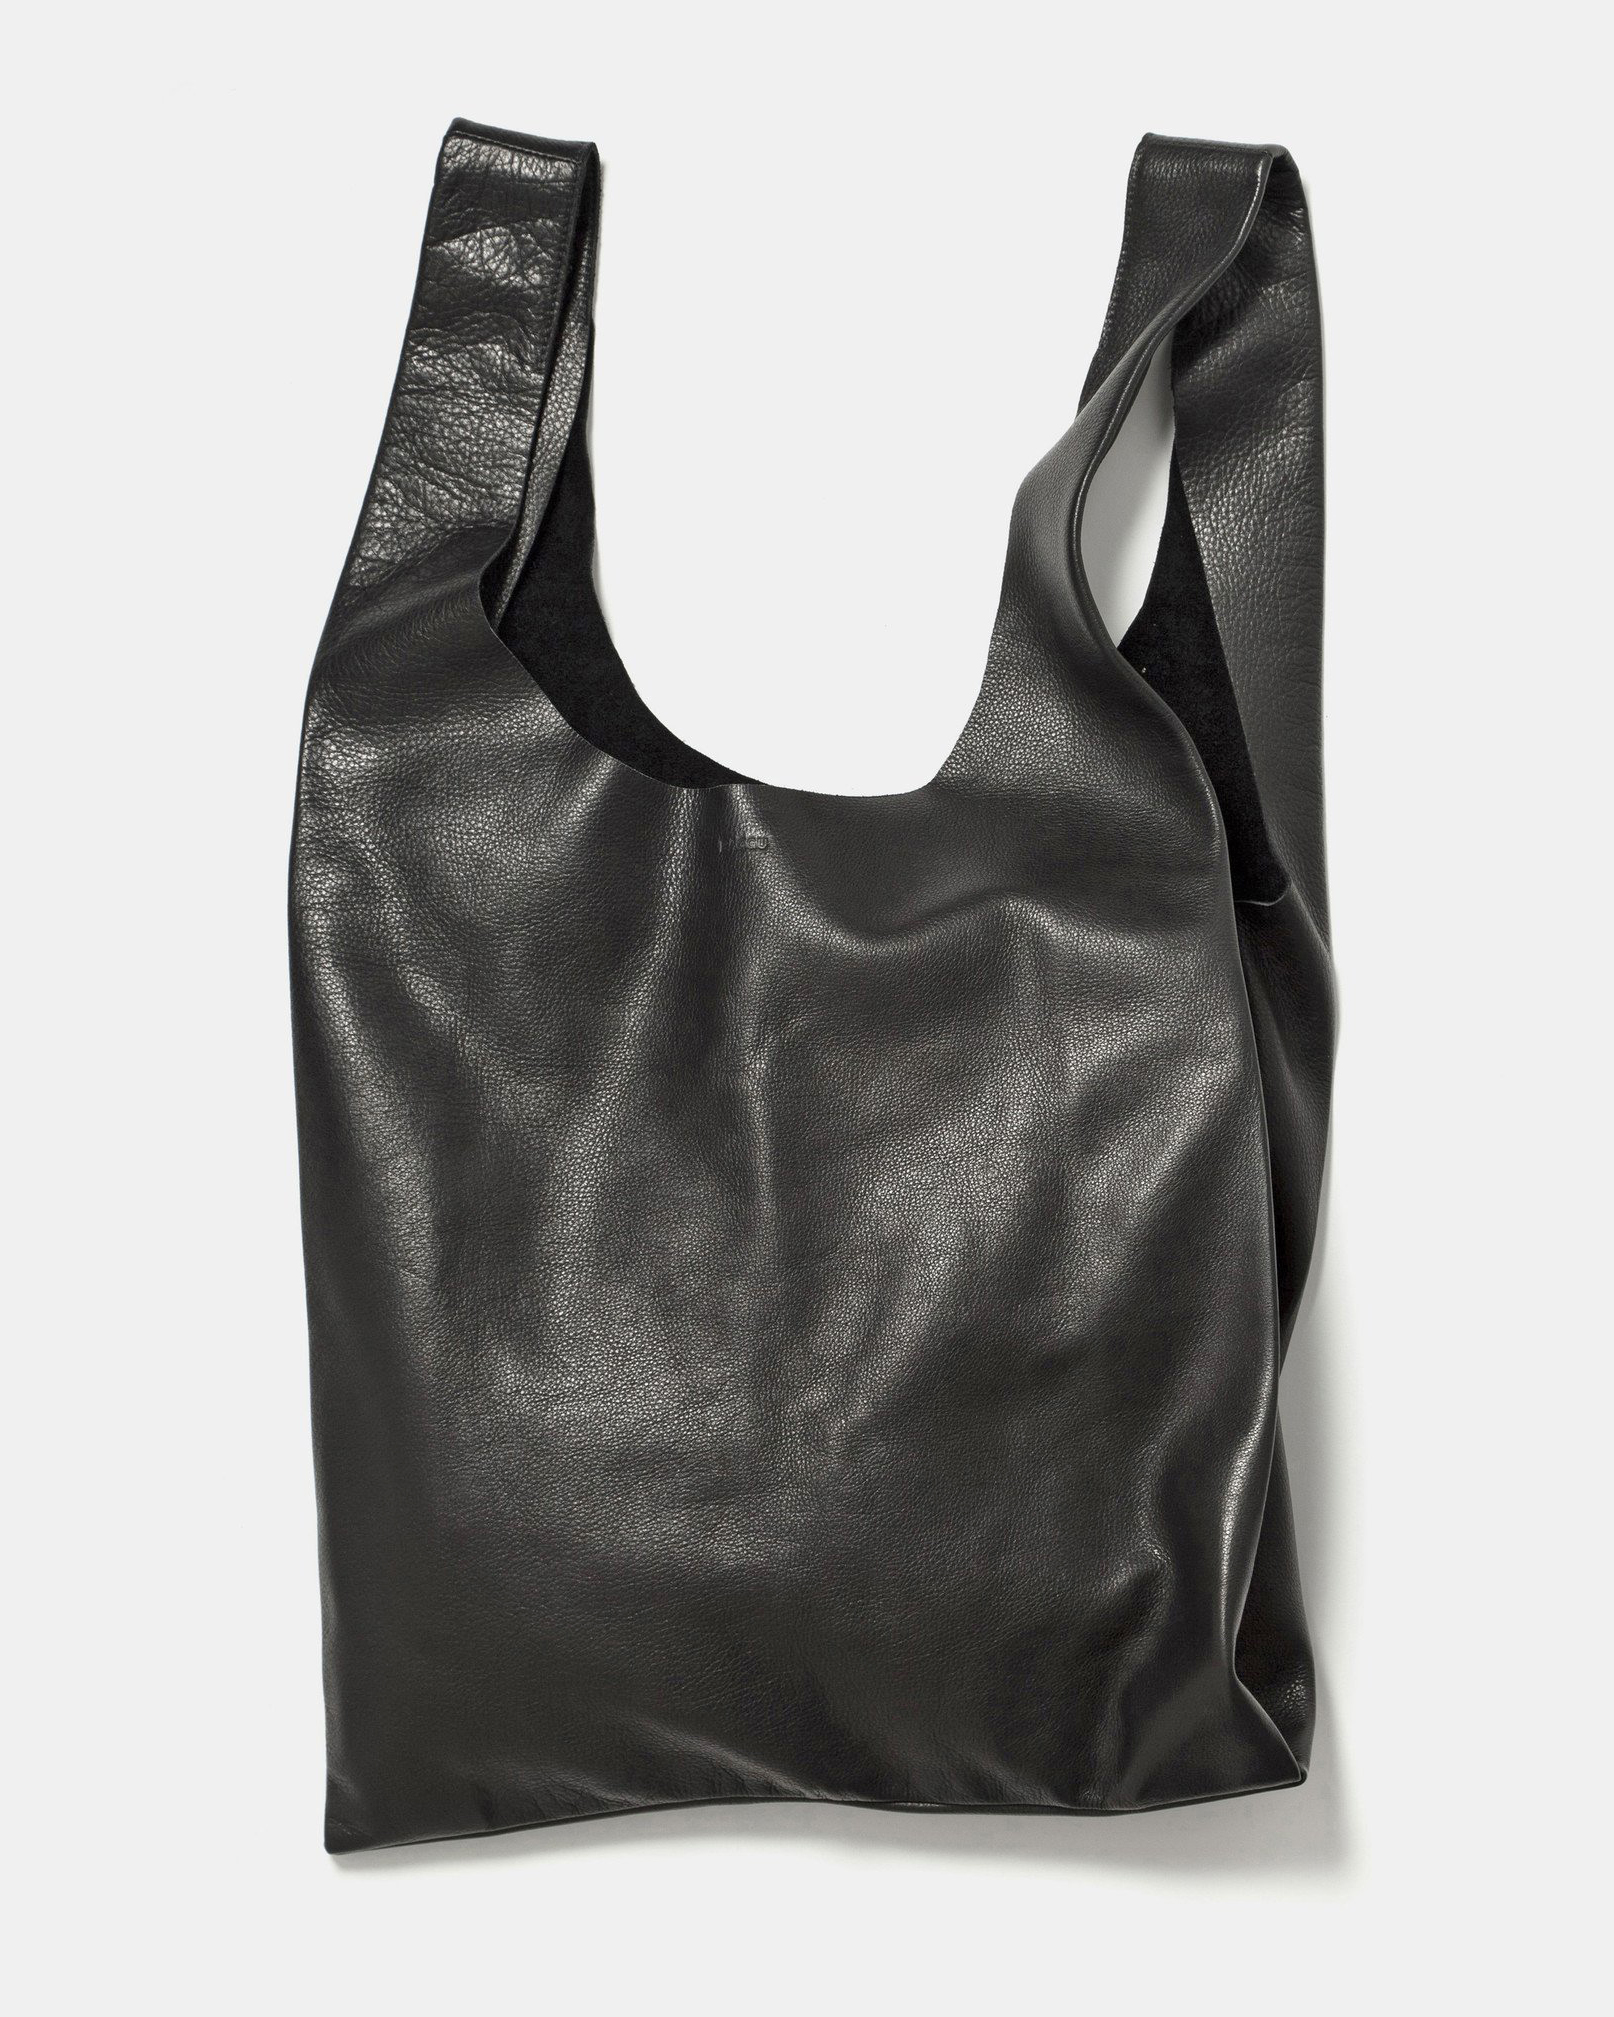 leather anniversary gifts baggu tote